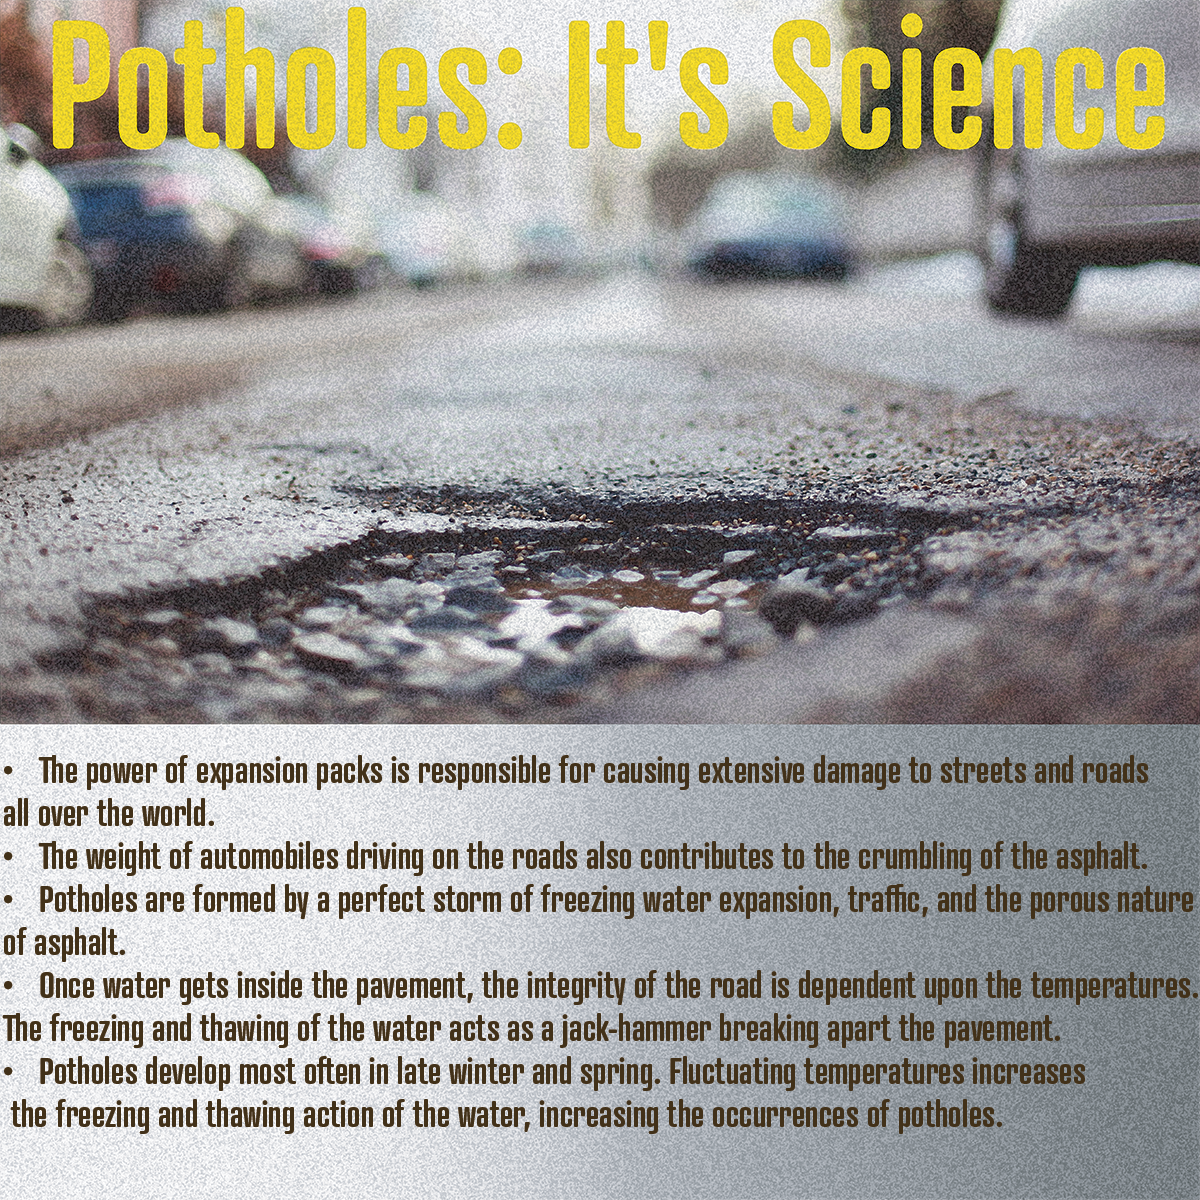 Pothole science, pothole